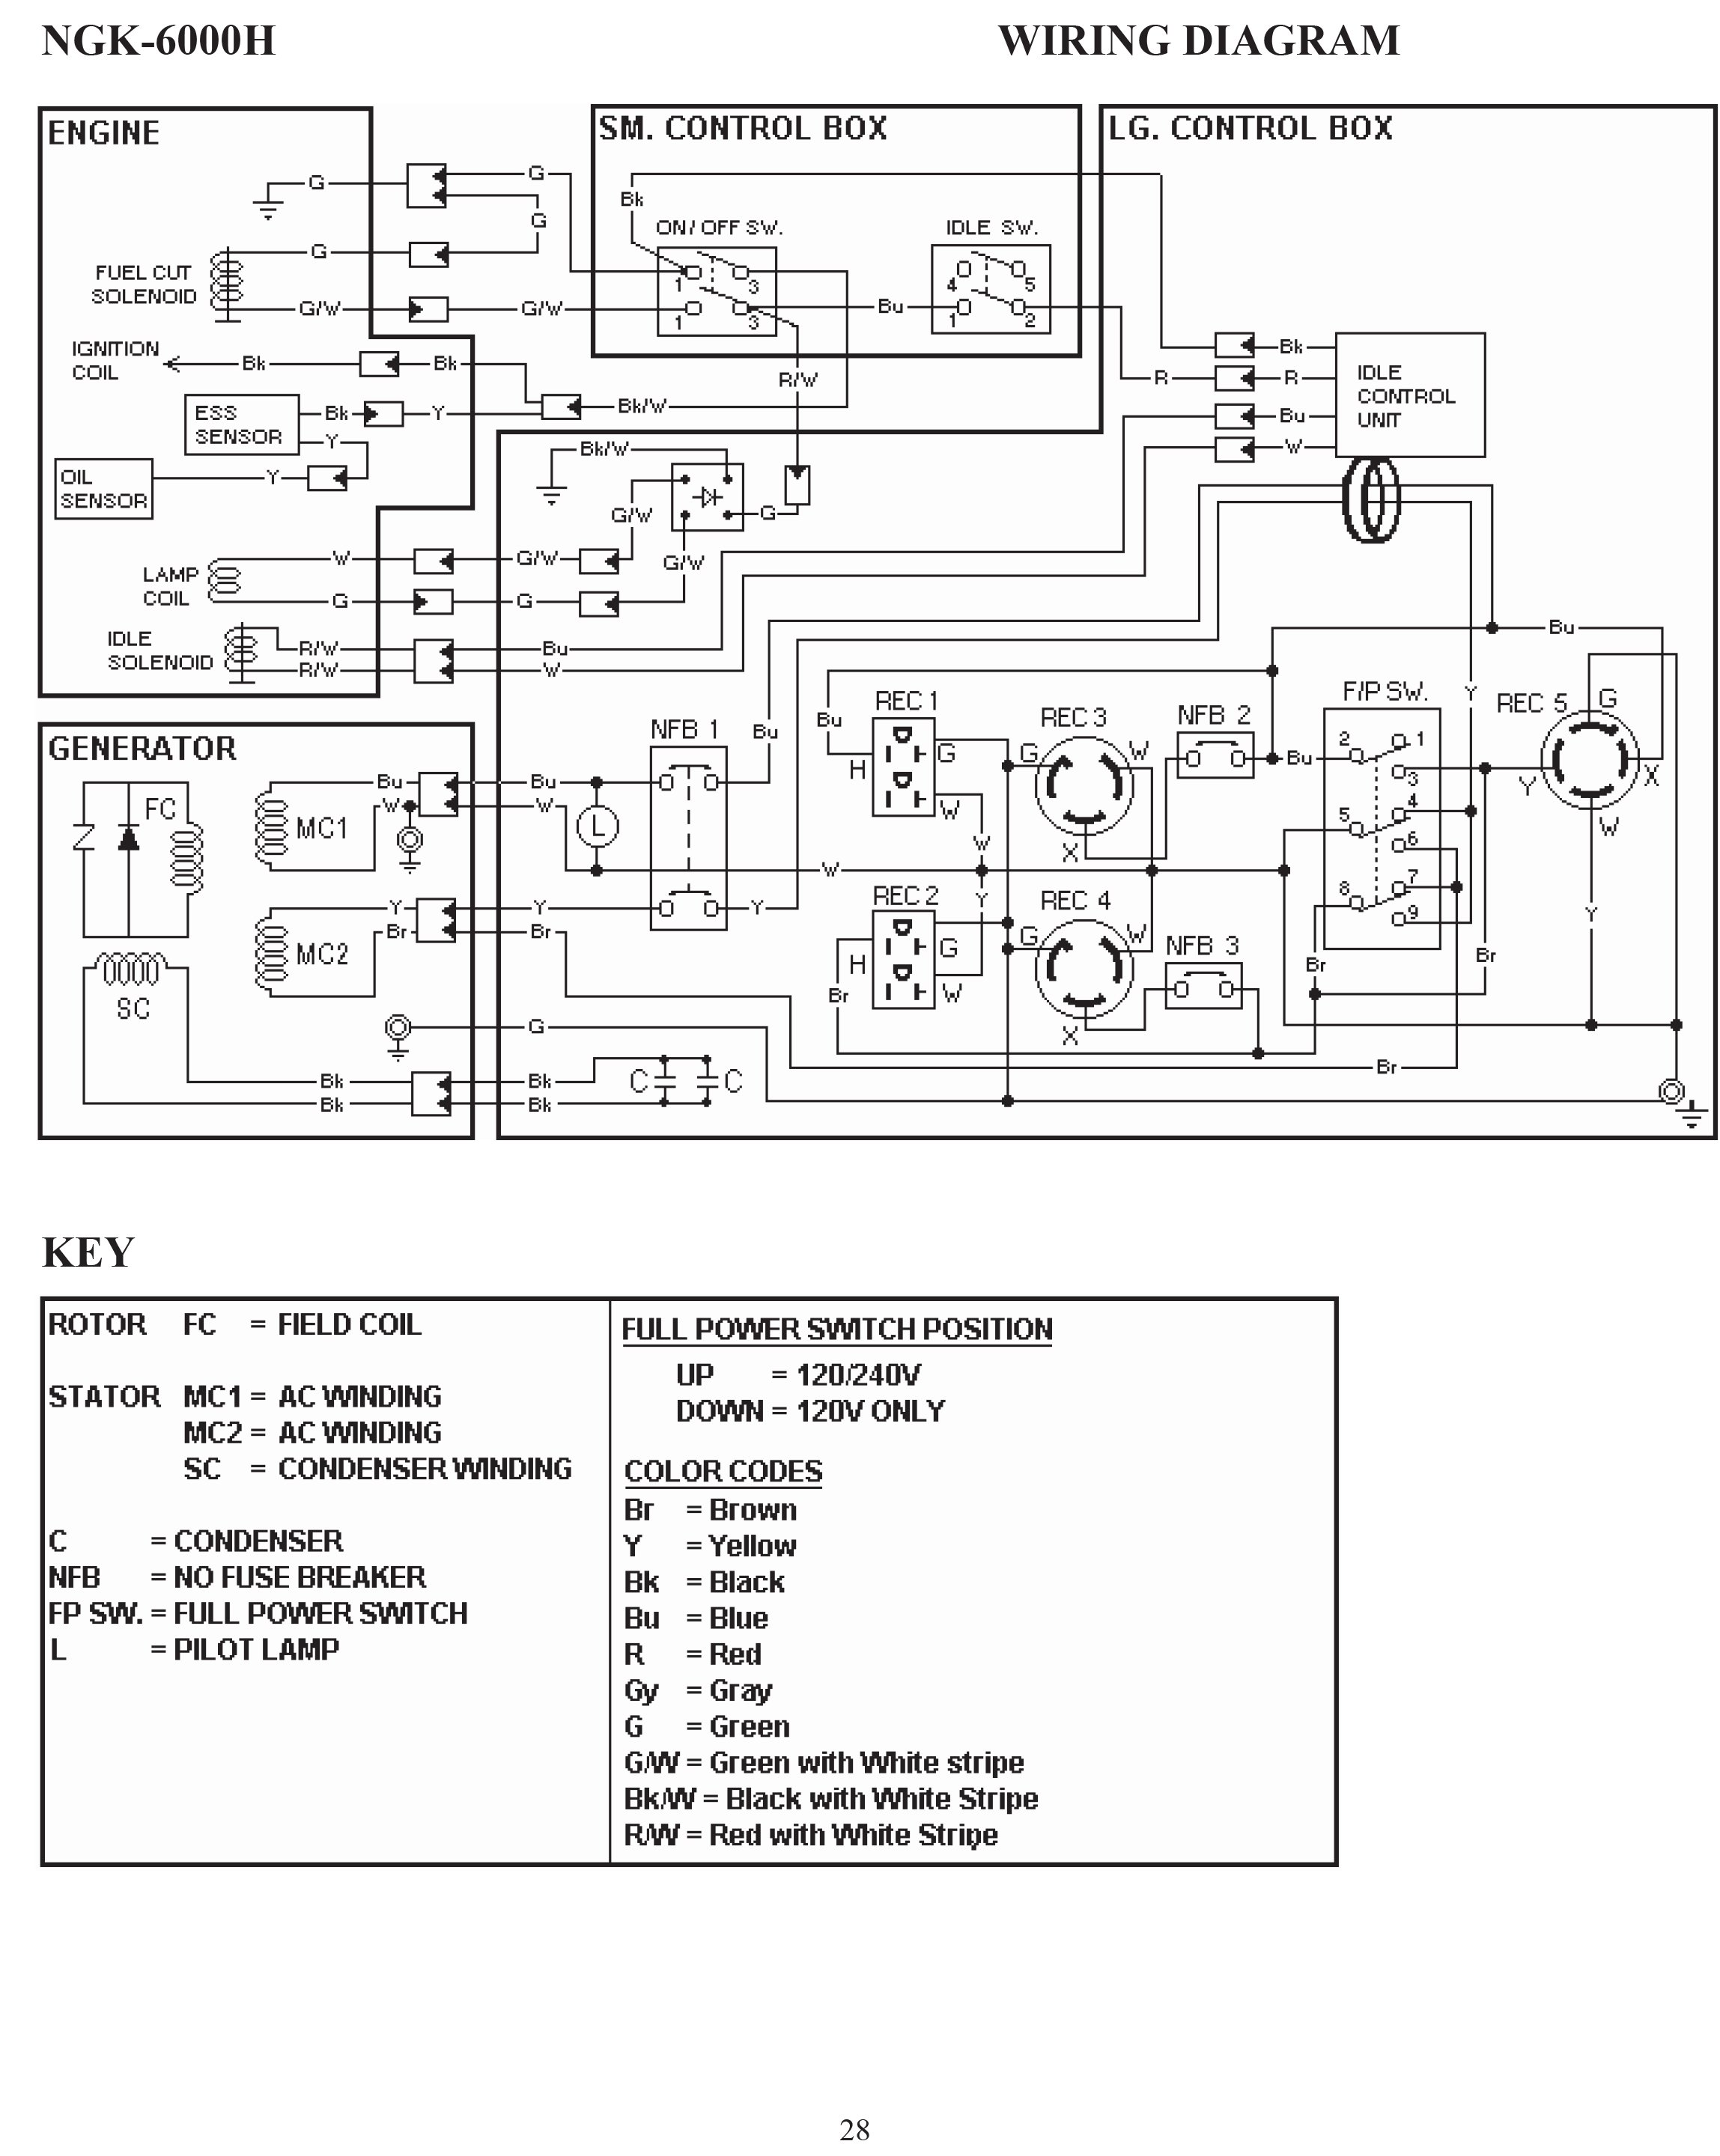 robin subaru generator wiring diagram info wiring u2022 rh spectrin co 1996 Subaru Legacy Wiring-Diagram Subaru Ignition Wiring Diagram